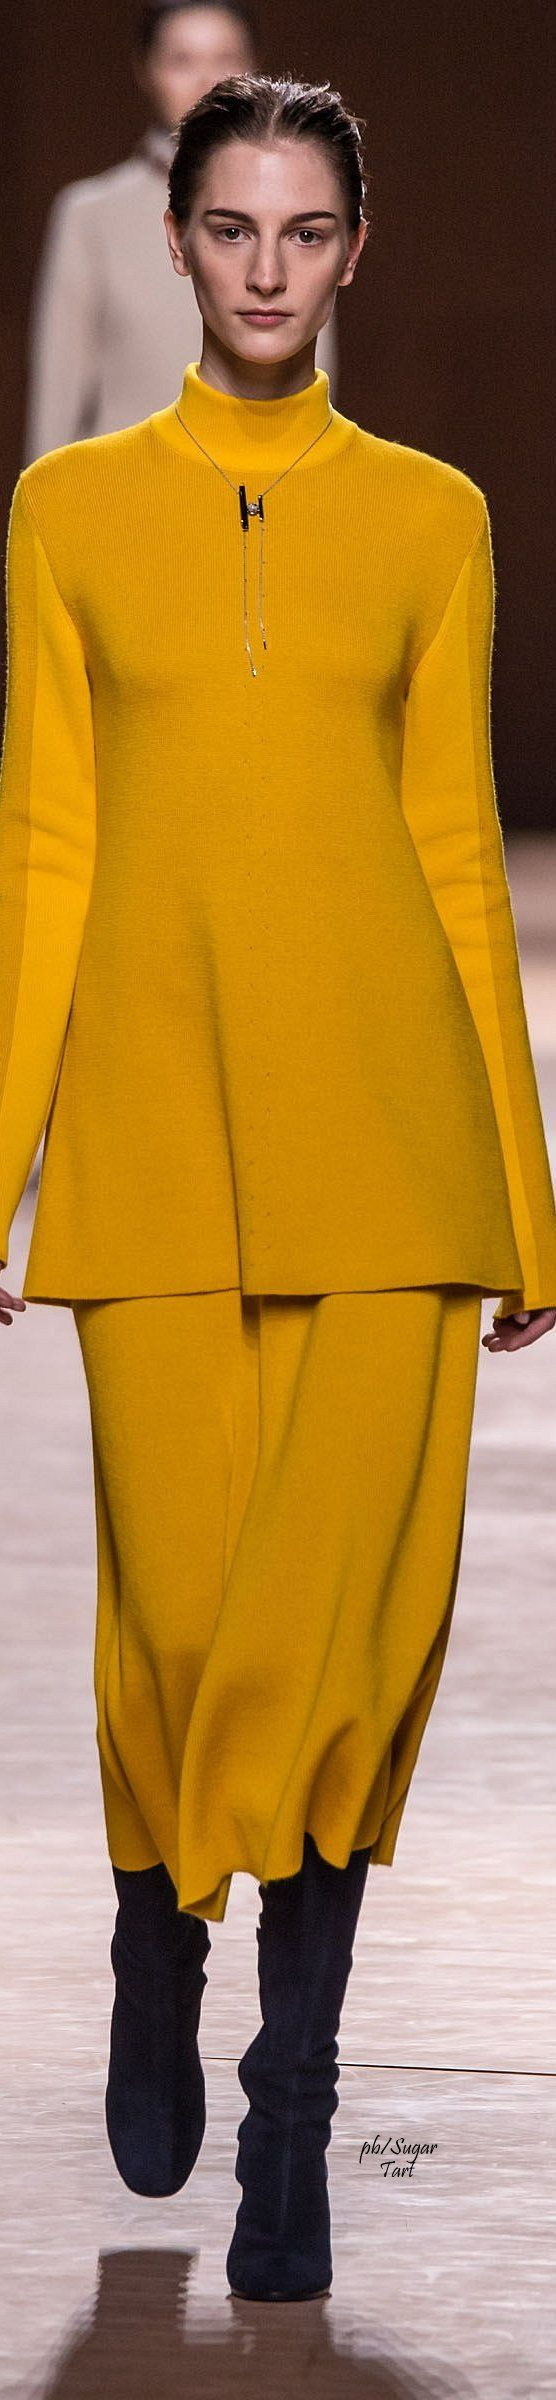 Hermes ~ Fall Cashmere Tunic w Maxi Skirt, Canary, 2015-16